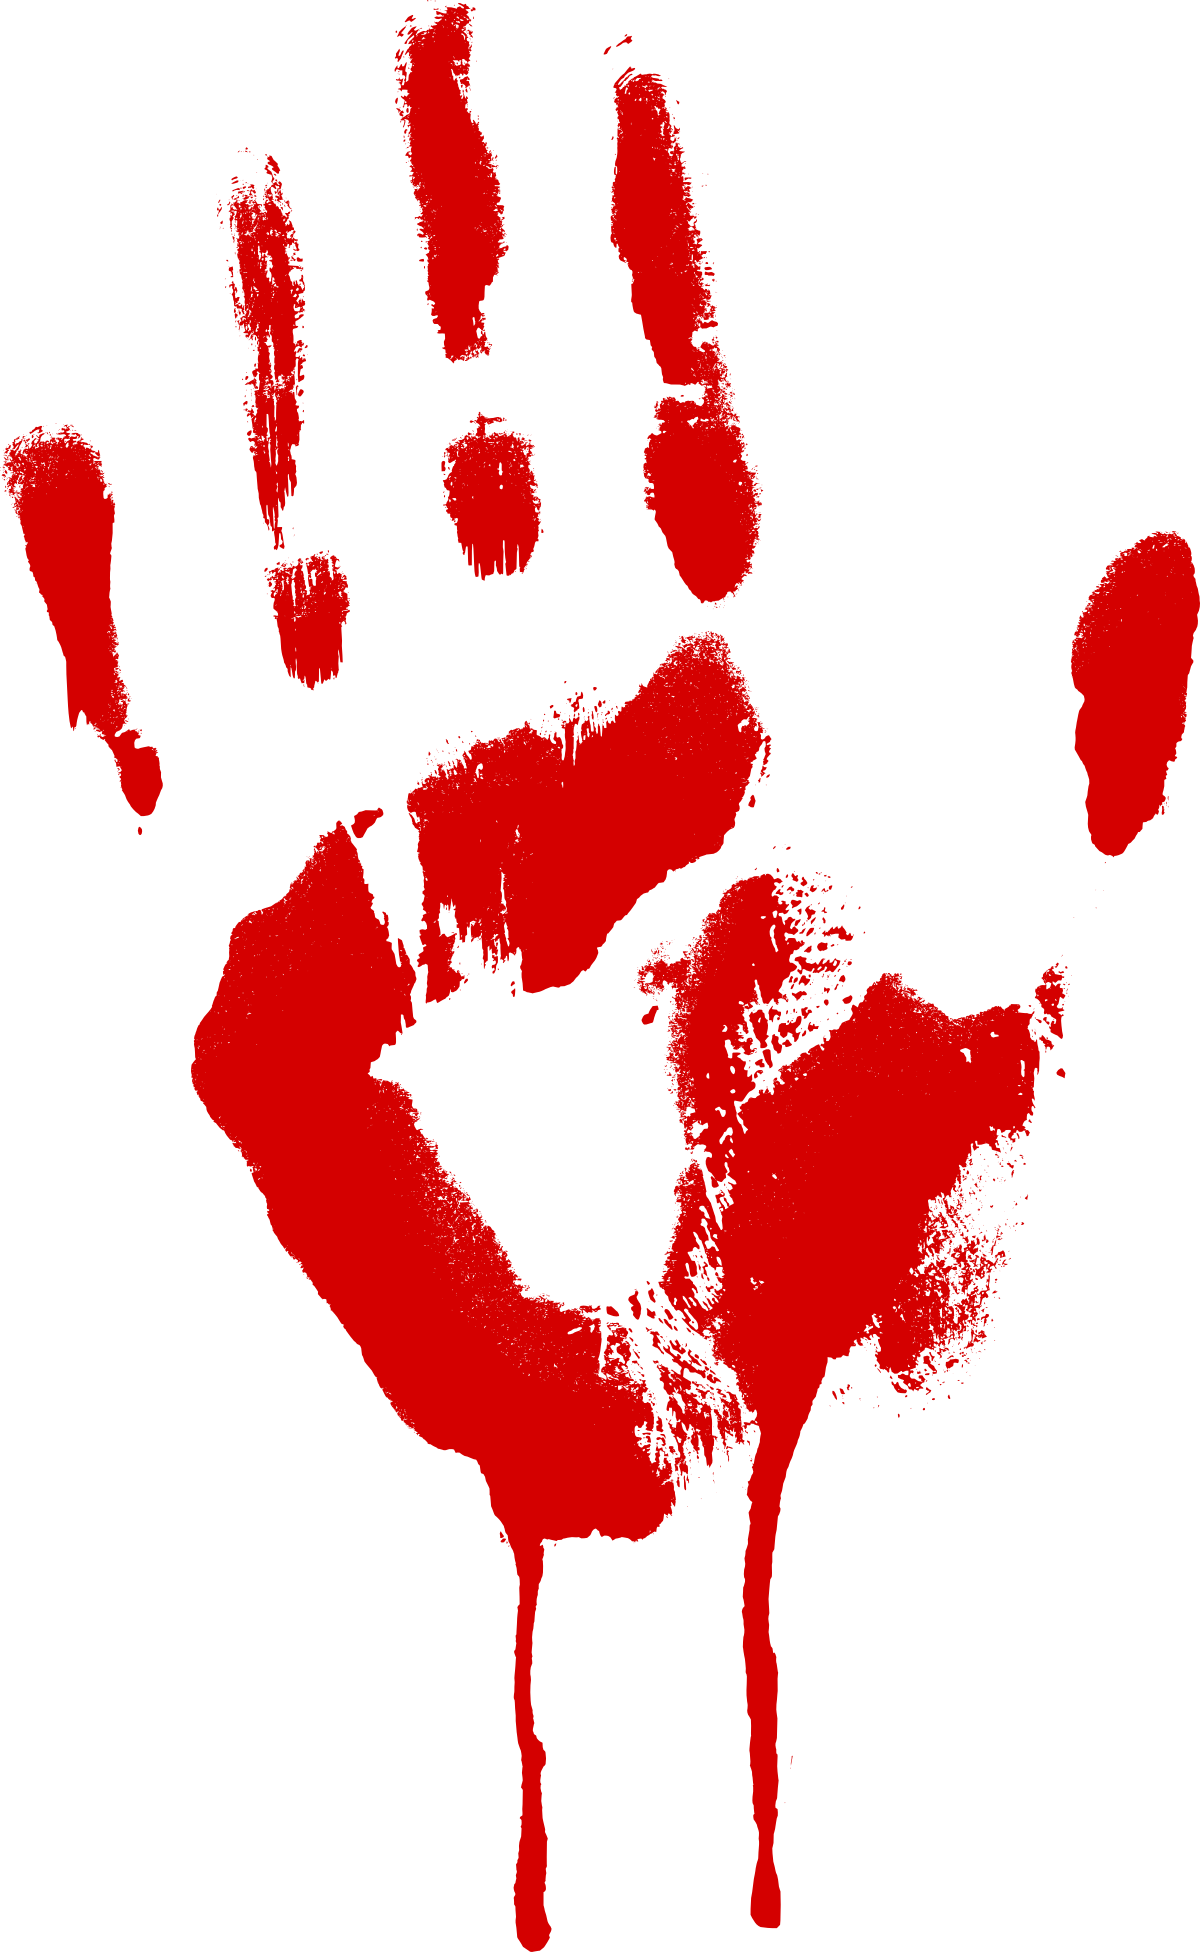 Free photo red hand. Blood smear png